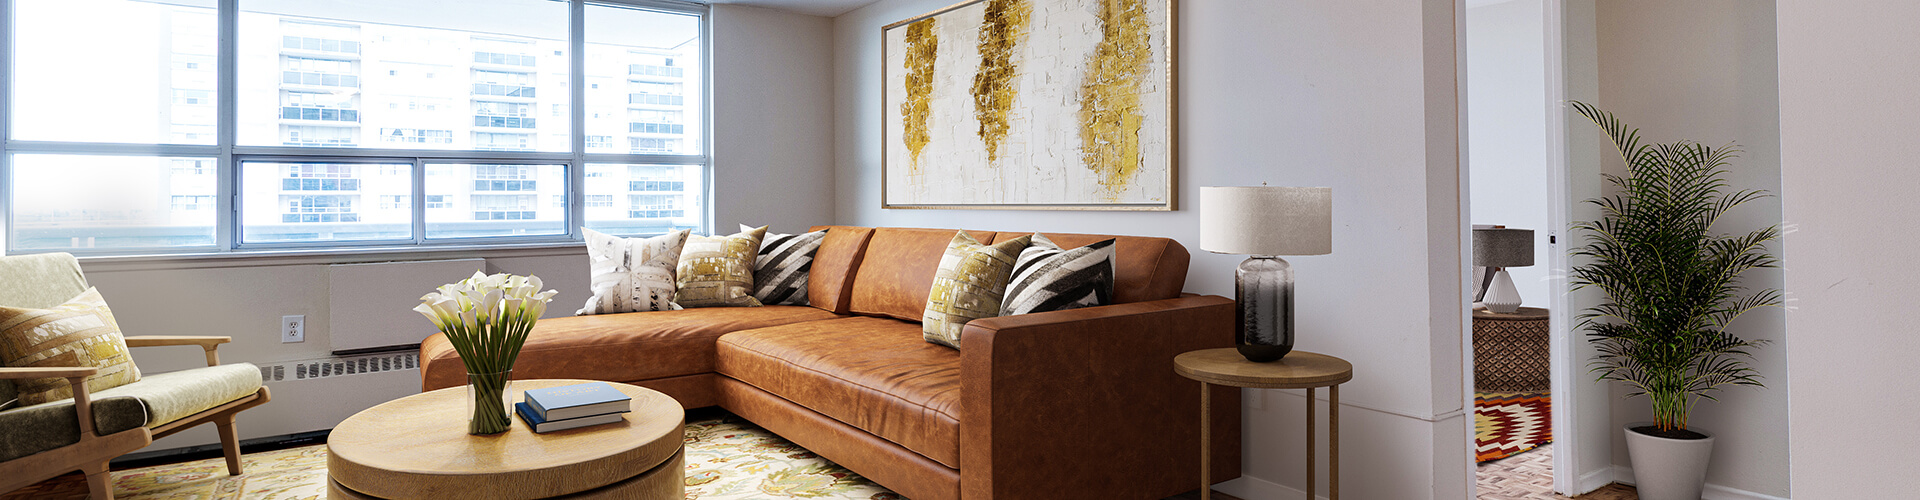 Luminous living room at Richgrove Drive Apartments in Toronto. Rent with Minto Apartments.